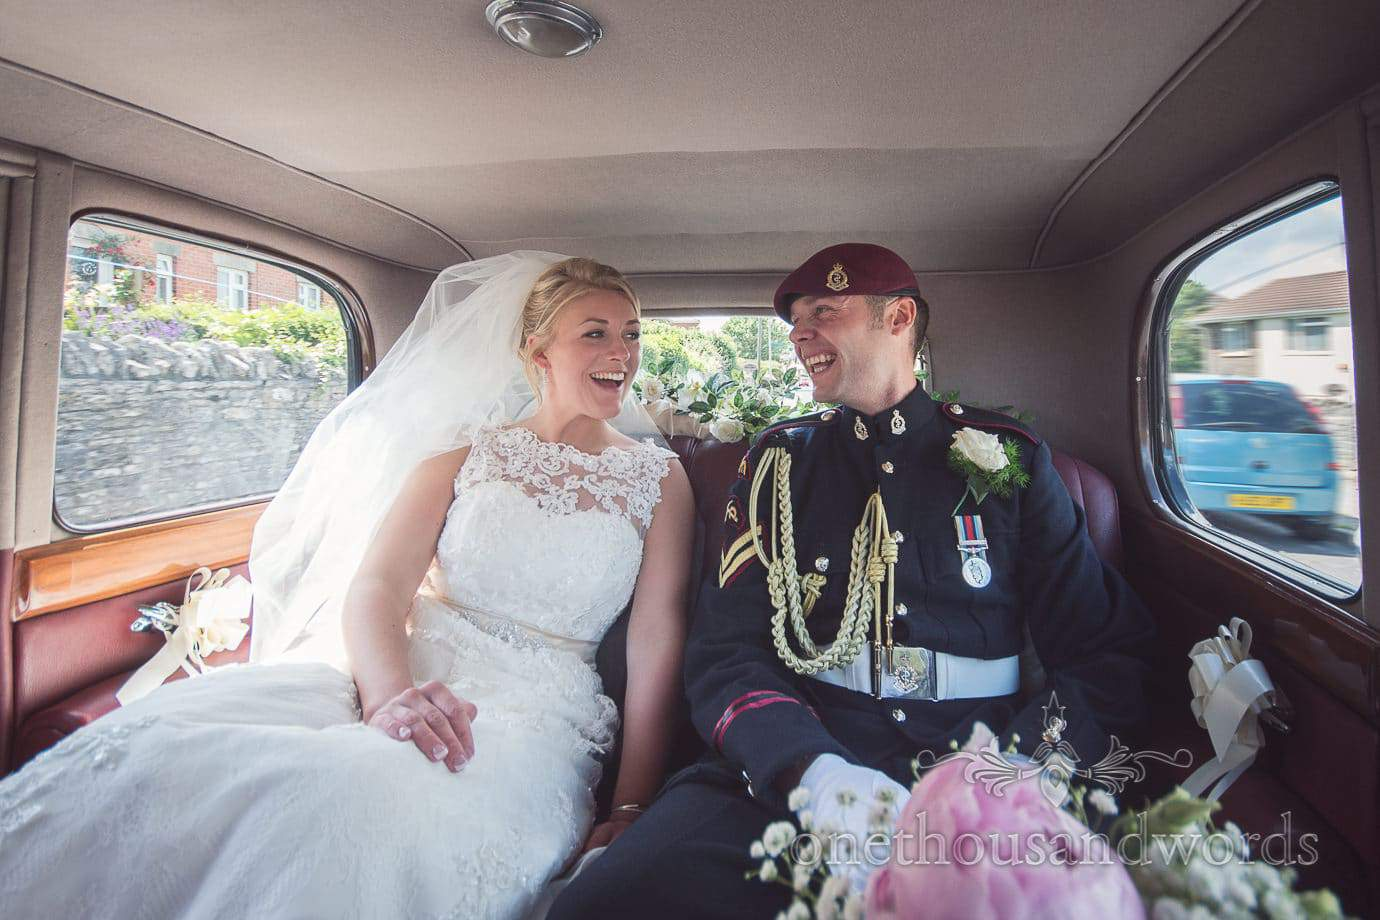 Bride and groom in Military uniform in Classic wedding car in Swanage